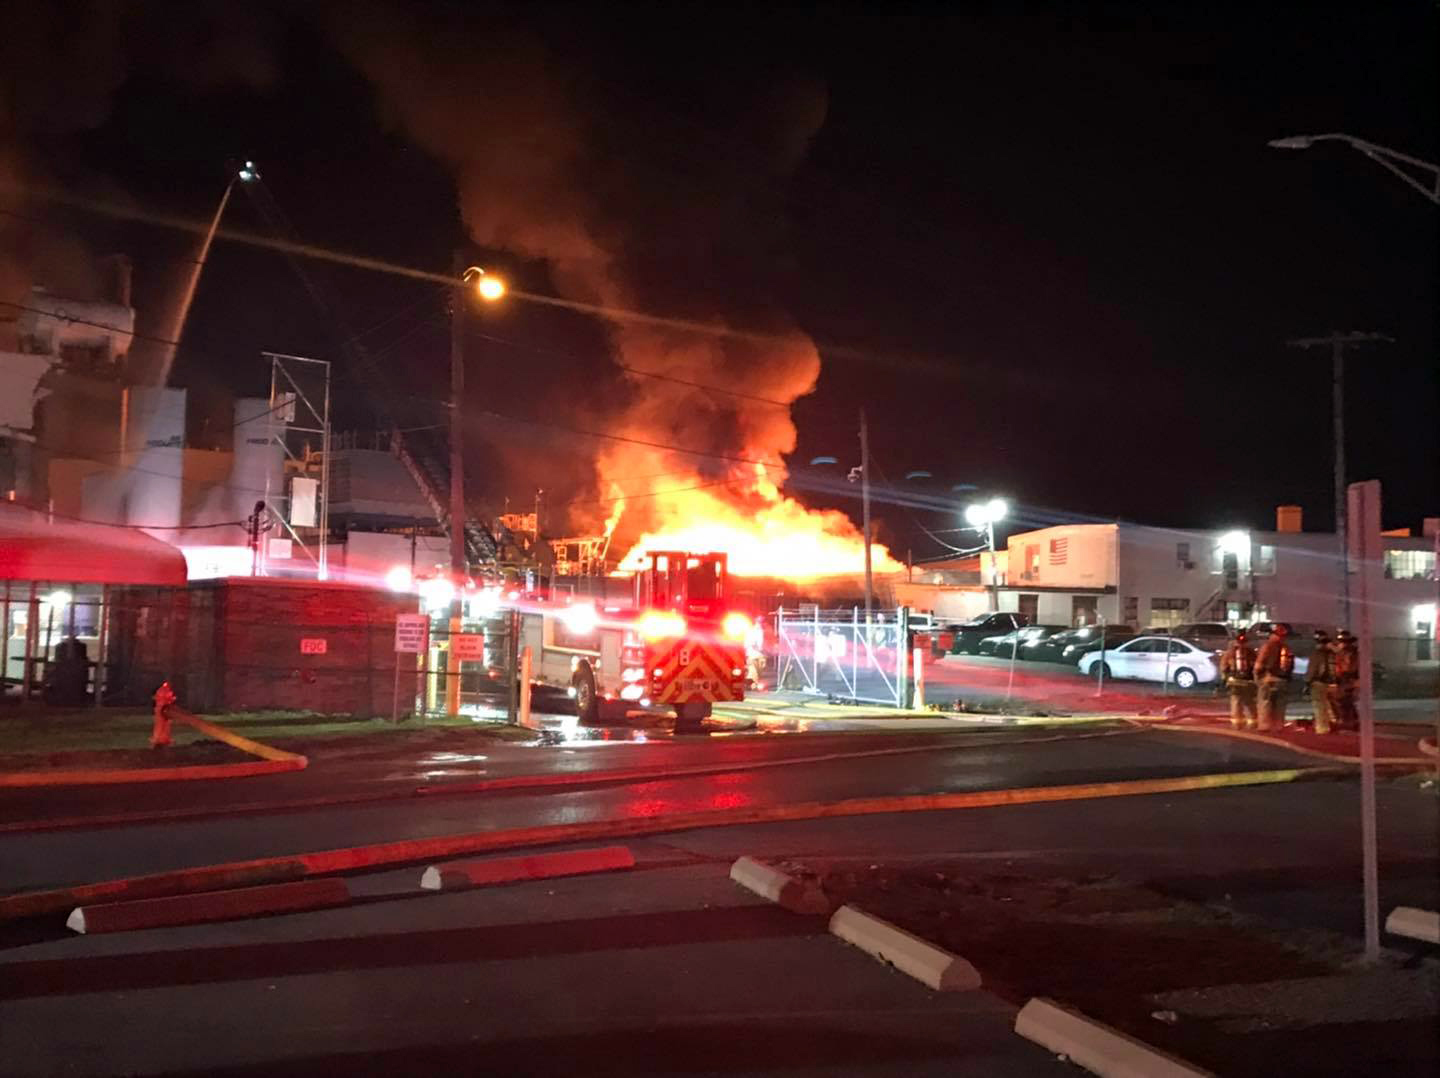 Eight-hurt,-one-missing-after-explosion,-fire-at-Ohio-paint-plant